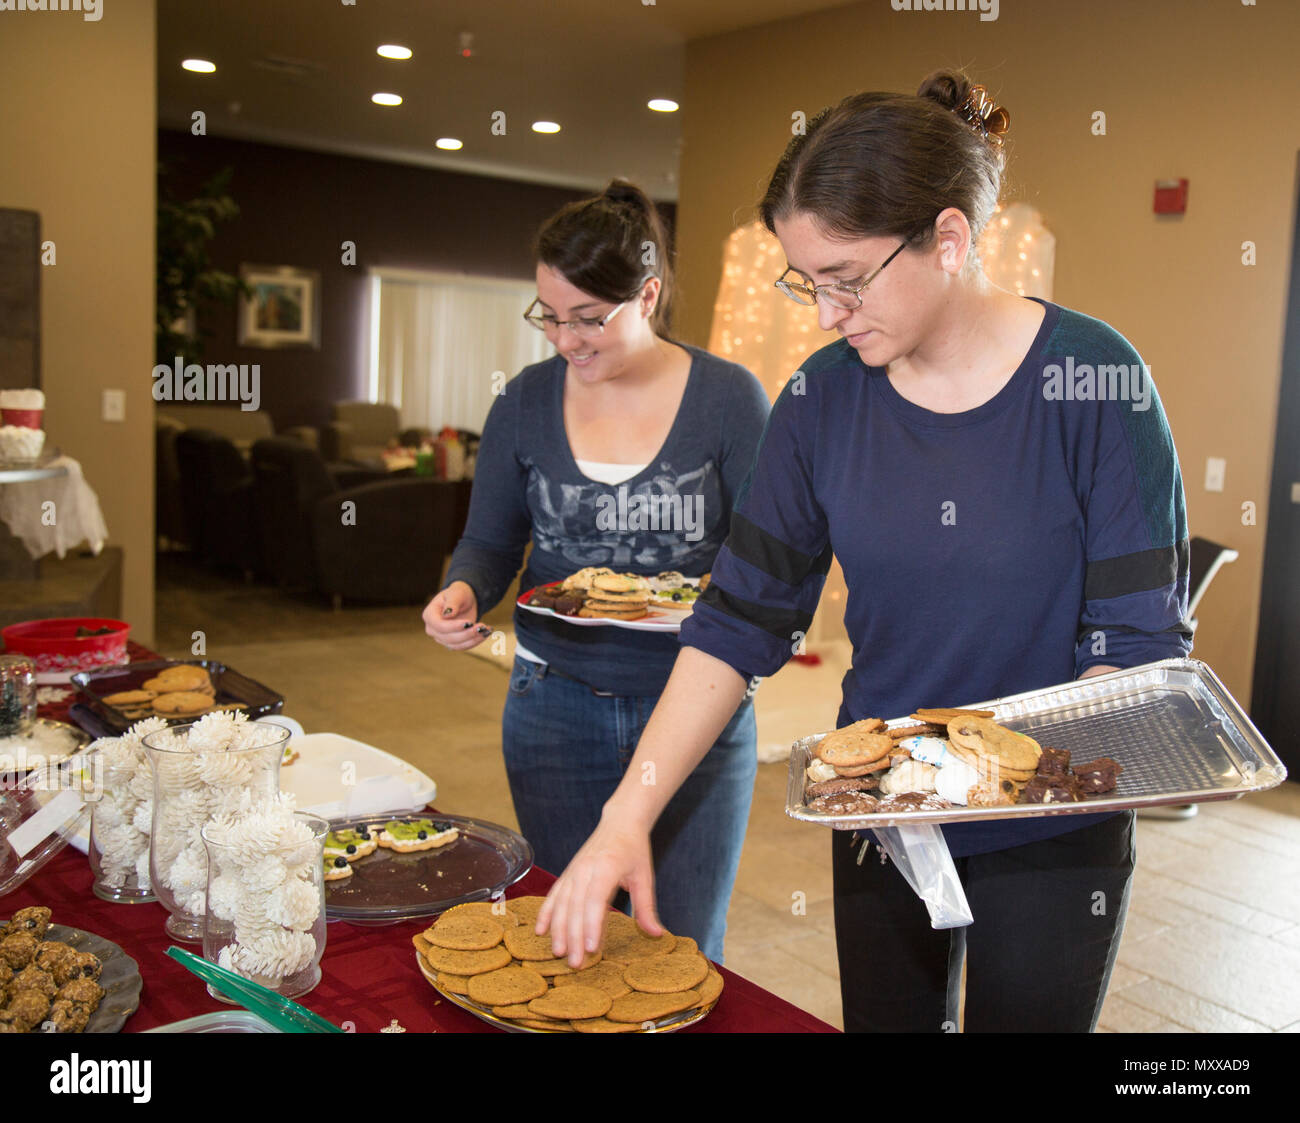 Military spouses, Jamie Teale and Erica King, enjoy a morning of exchanging cookies and ornaments aboard Marine Corps Logistics Base Barstow, Calif., Dec. 13. All of the attendees bring cookies and an ornament, then fill a tray each with a variety of goodies to take home. - Stock Image